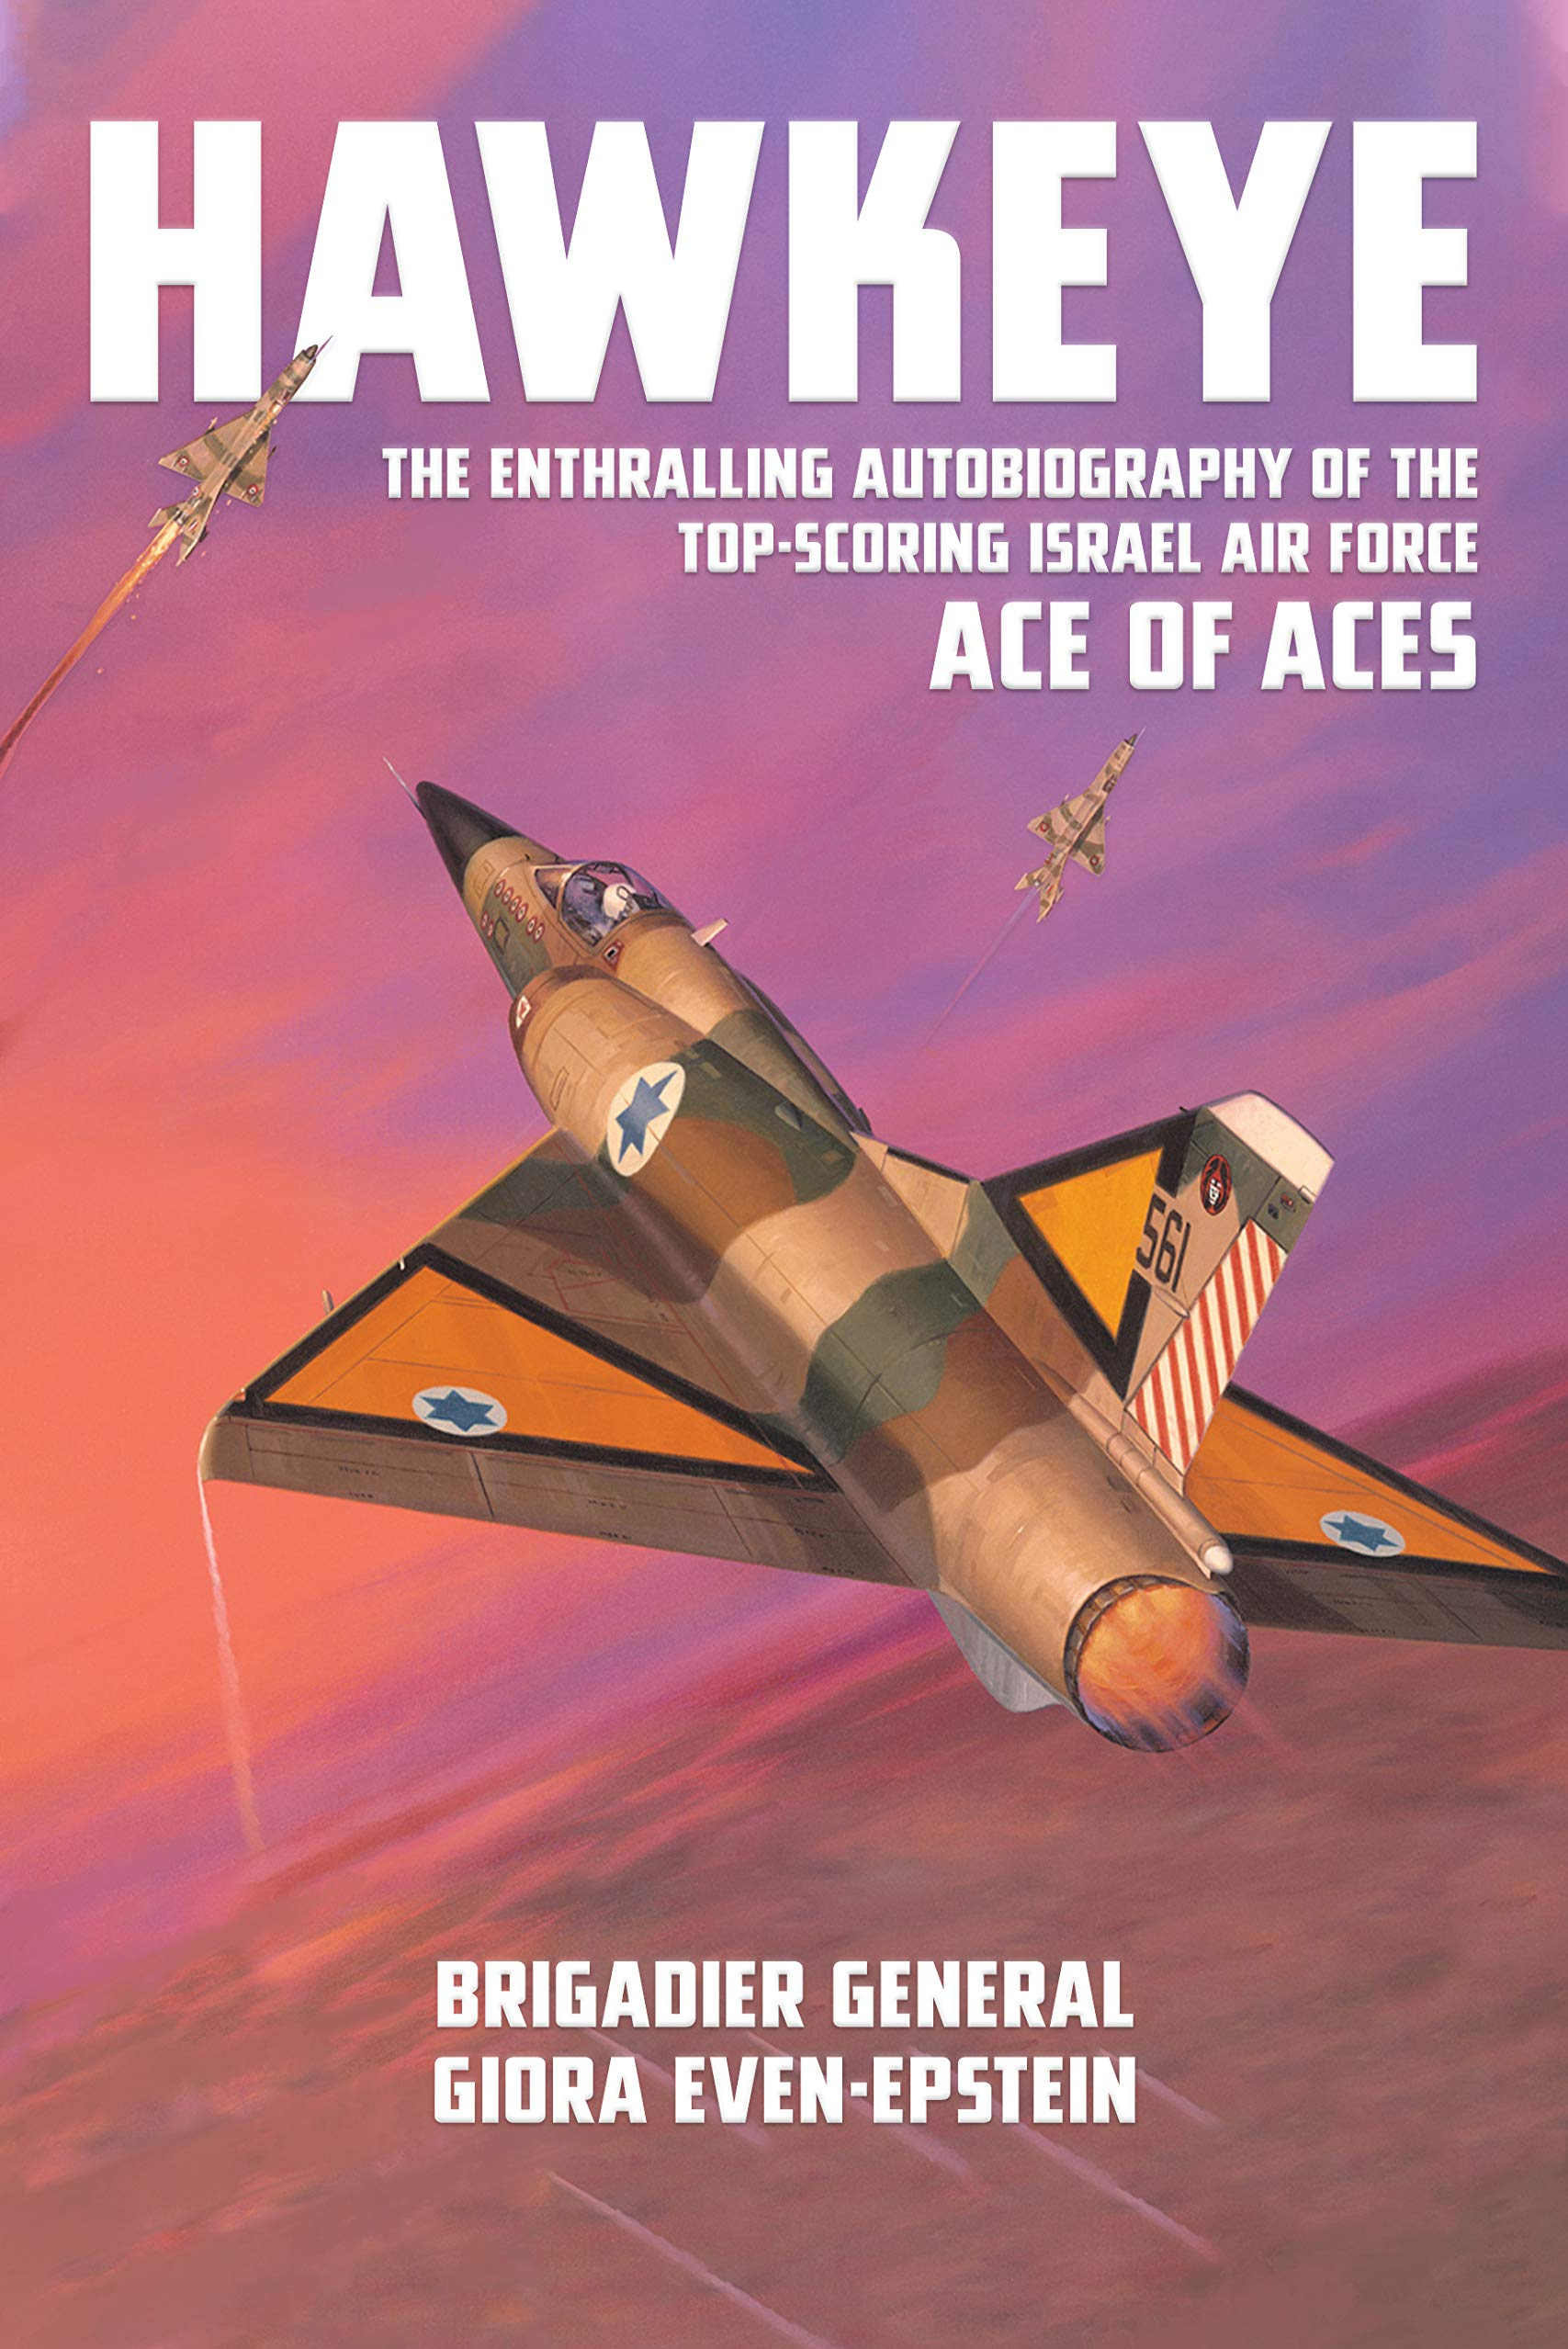 Hawkeye - The Enthralling Autobiography of the Top-Scoring Israel Air Force Ace of Aces by IAF Brigadier General Giora Even-Epstein